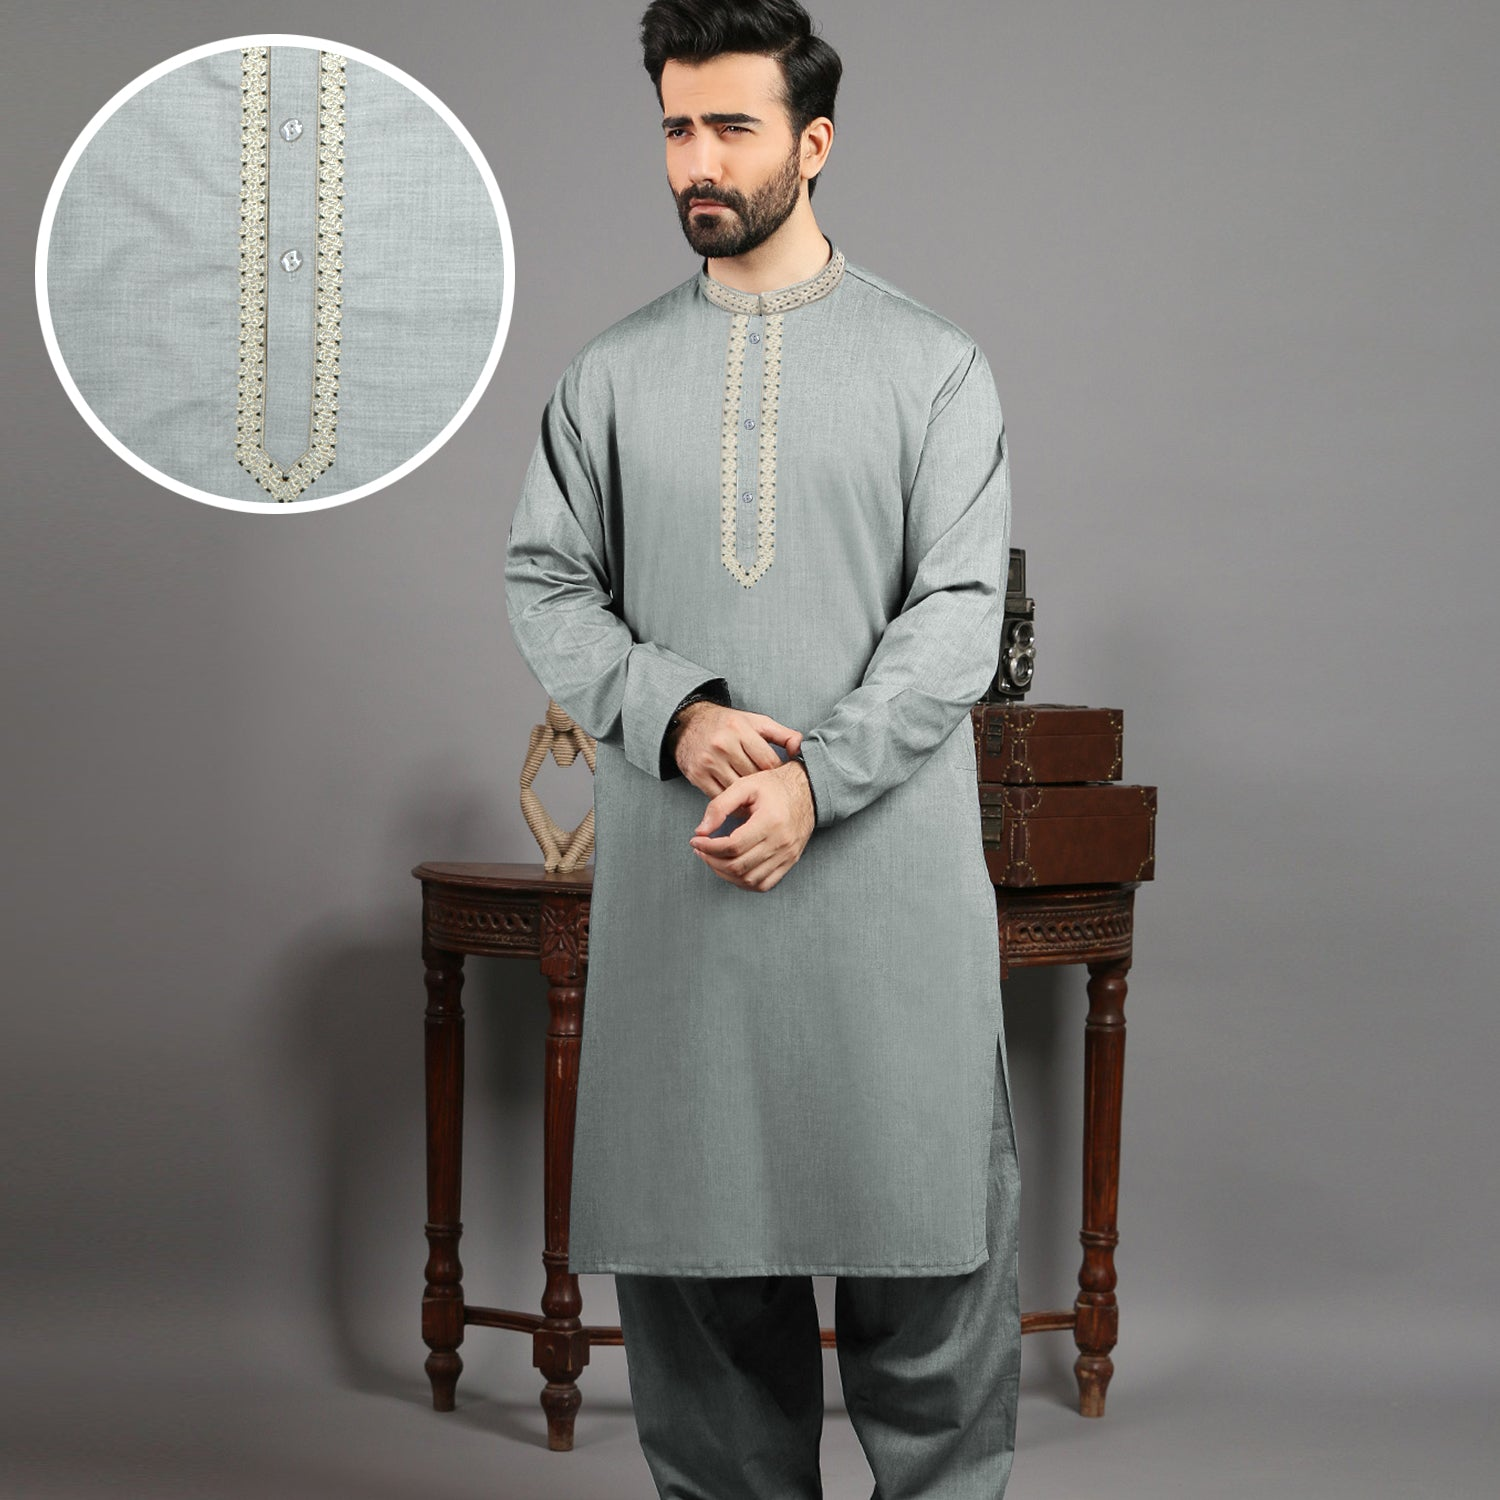 J. Premium Quality Washing Wear Shalwar Kameez Suit For Men-Light Slate Green-BE10061